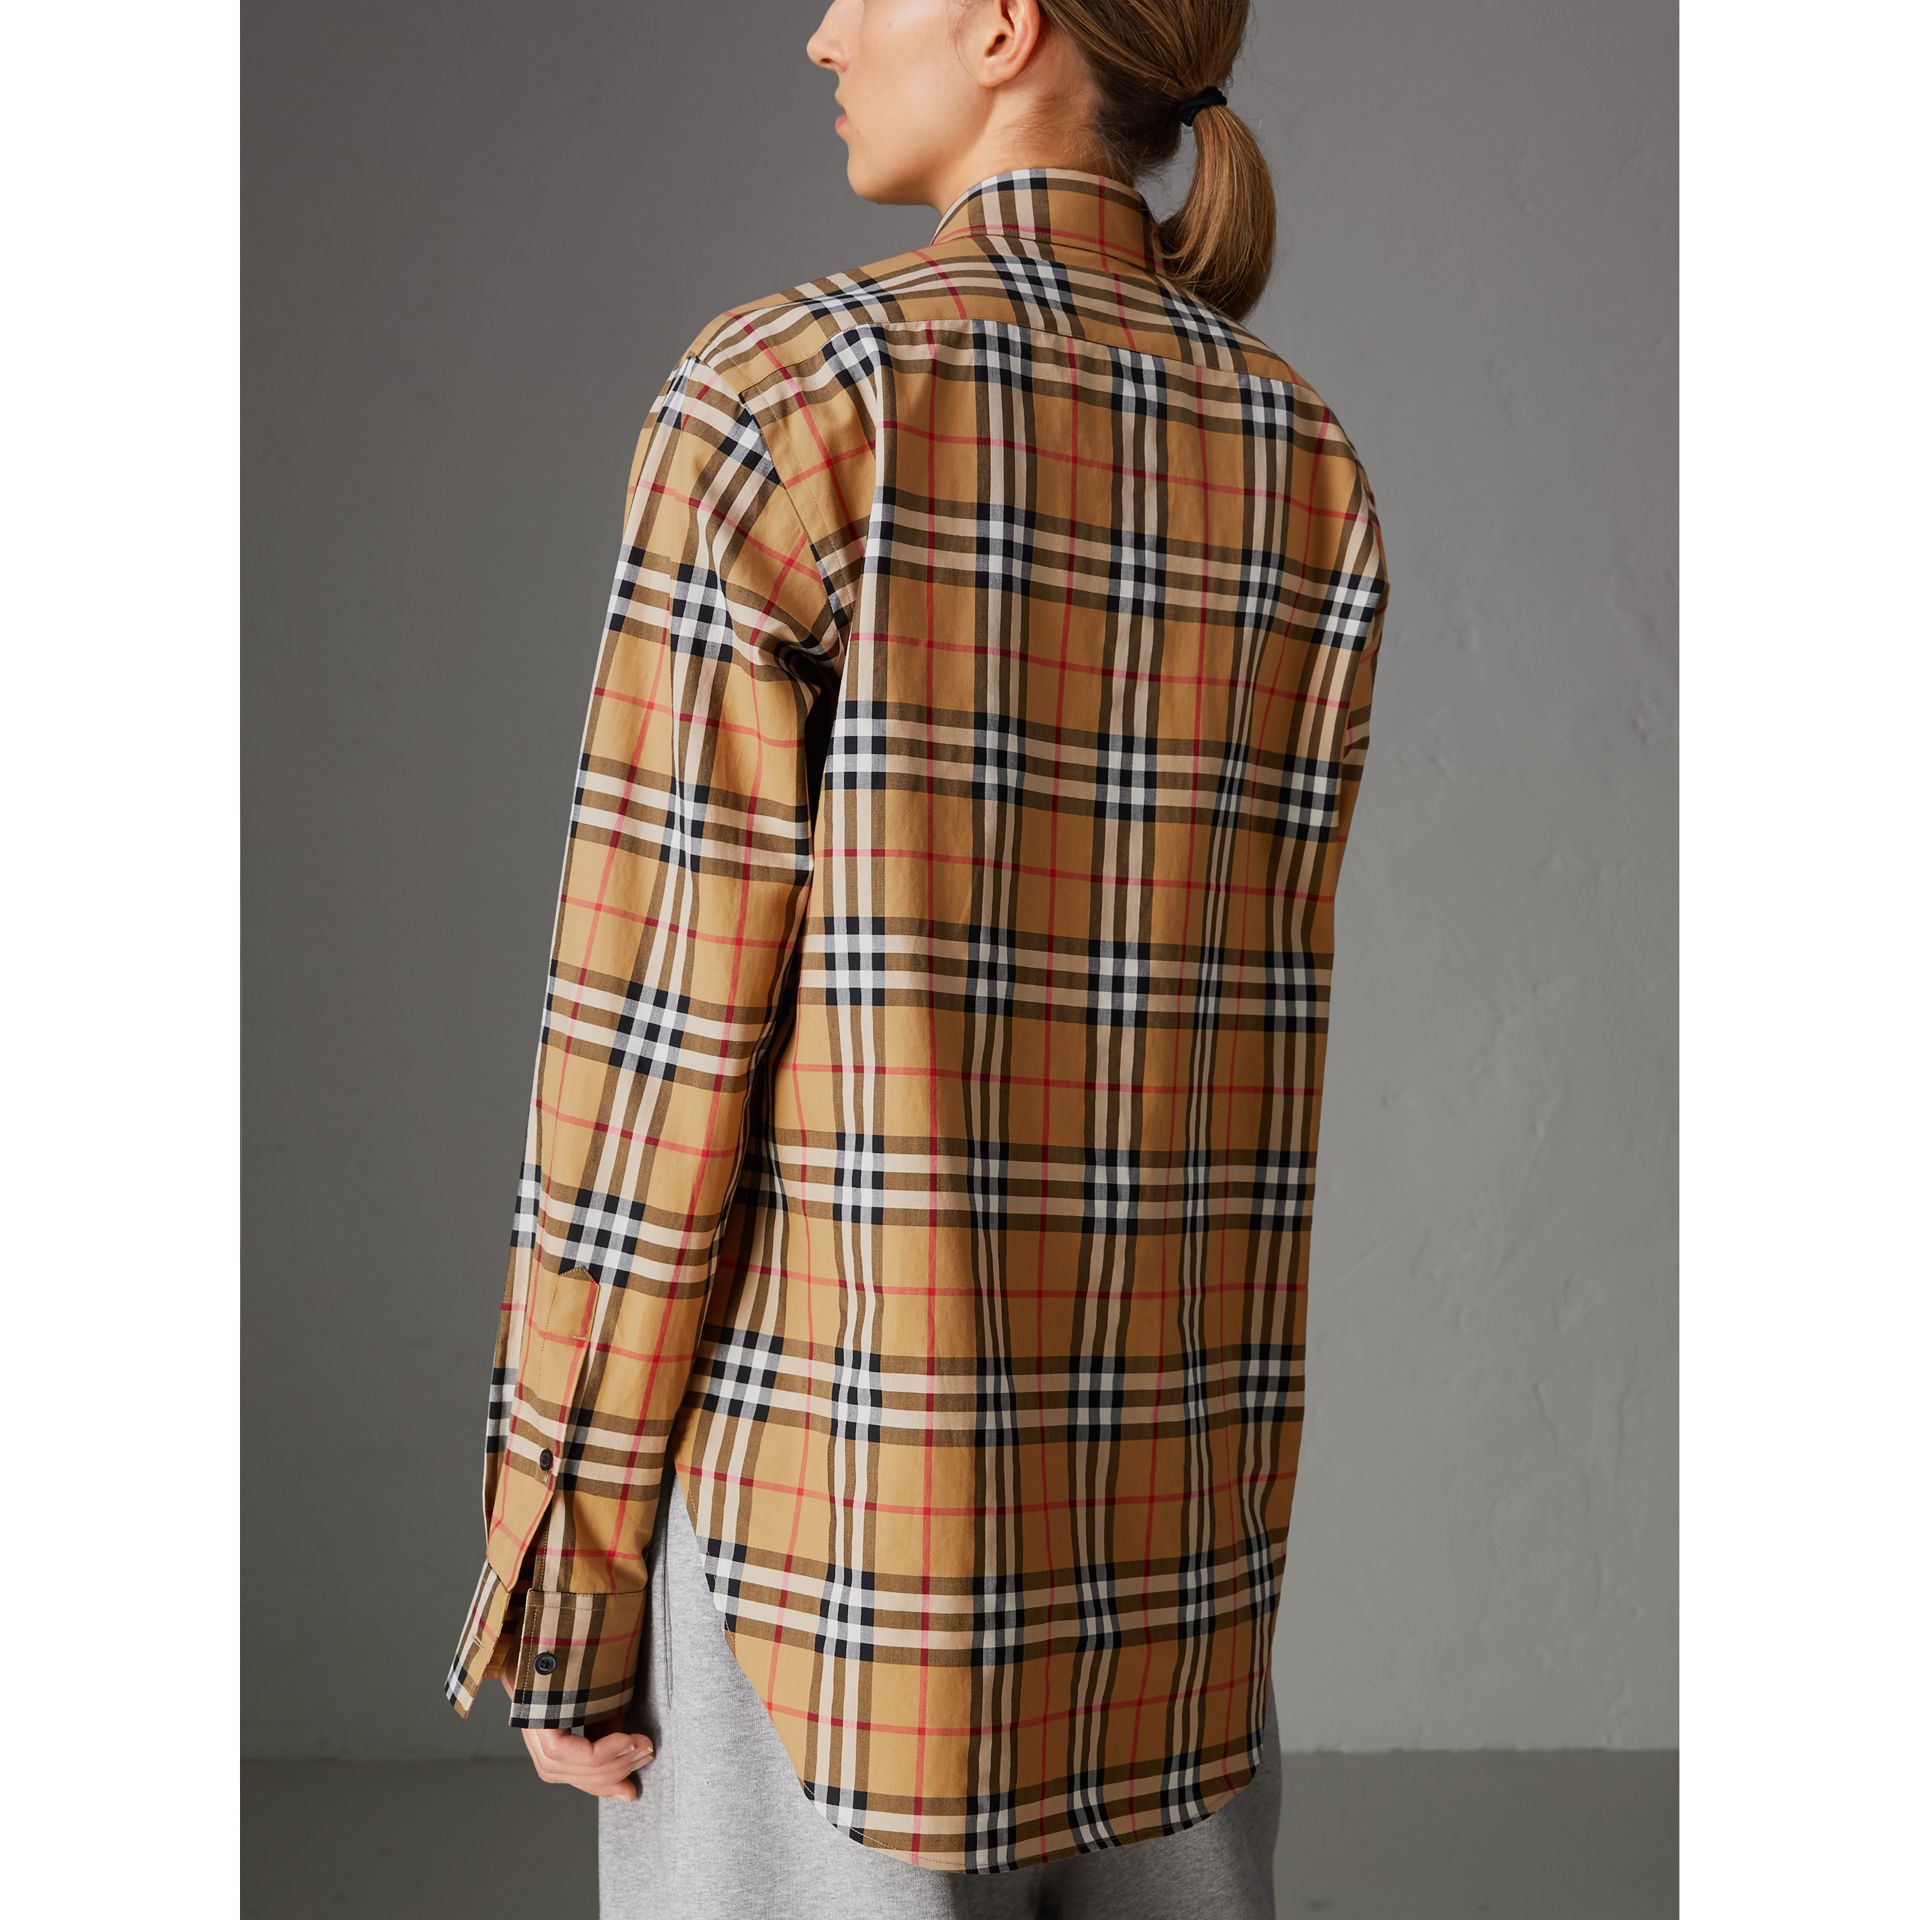 Rainbow Vintage Check Cotton Shirt in Antique Yellow - Women | Burberry Singapore - gallery image 2